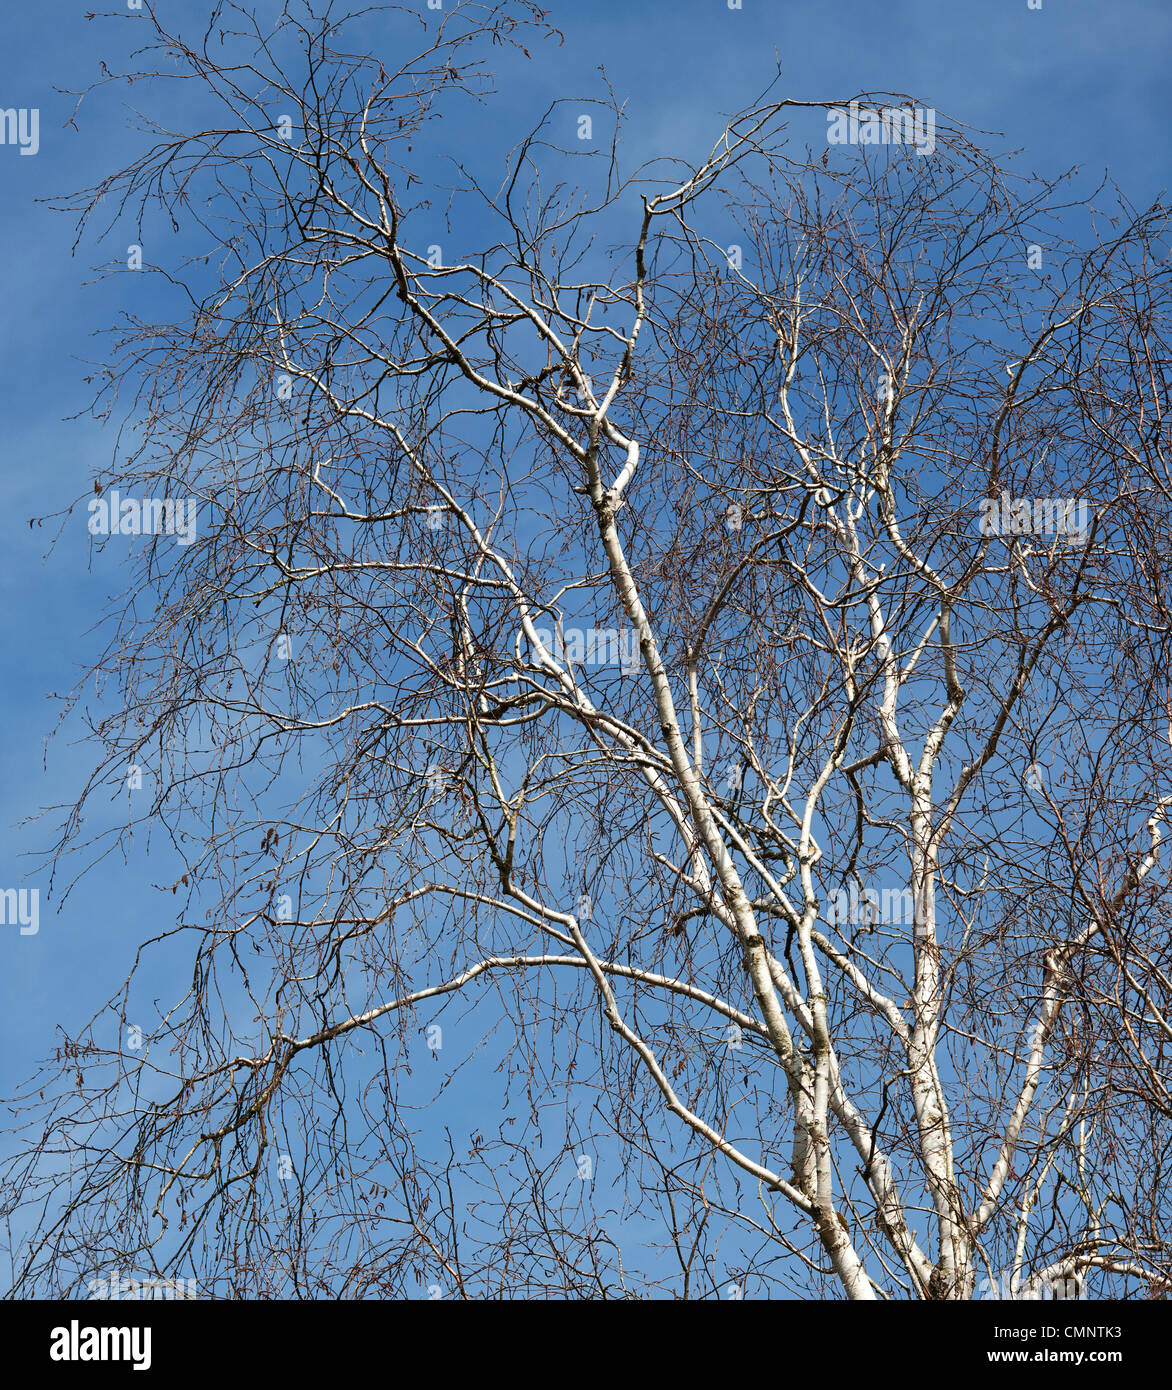 Betula x fetisowii . Silver Birch tree in the english countryside against a blue sky - Stock Image